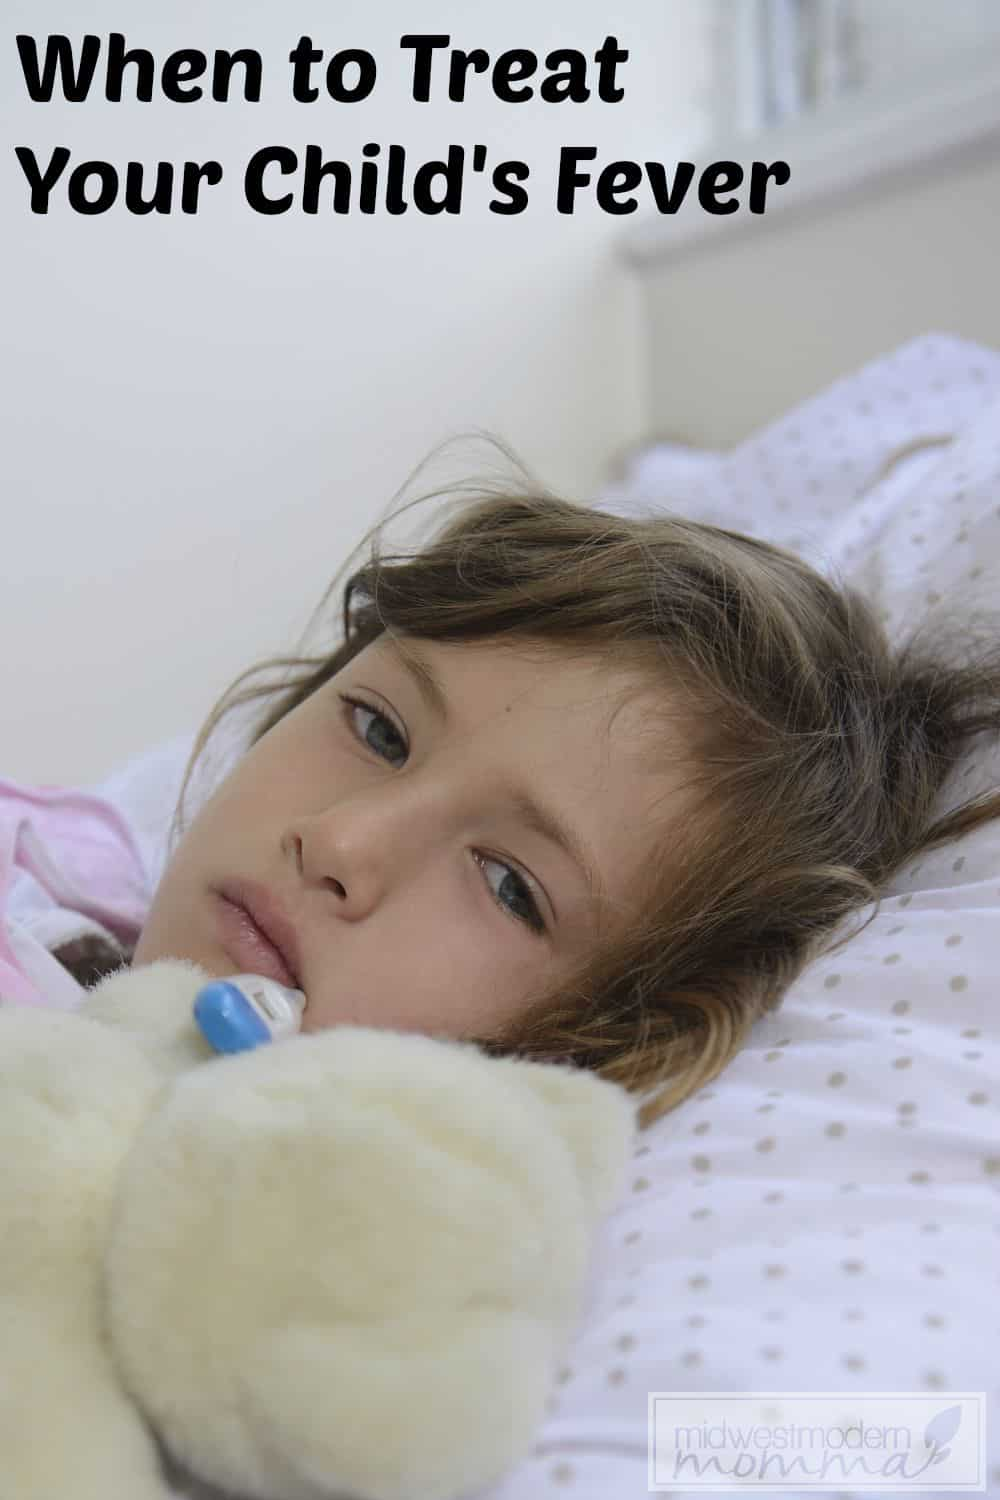 When to Treat Your Child's Fever at home